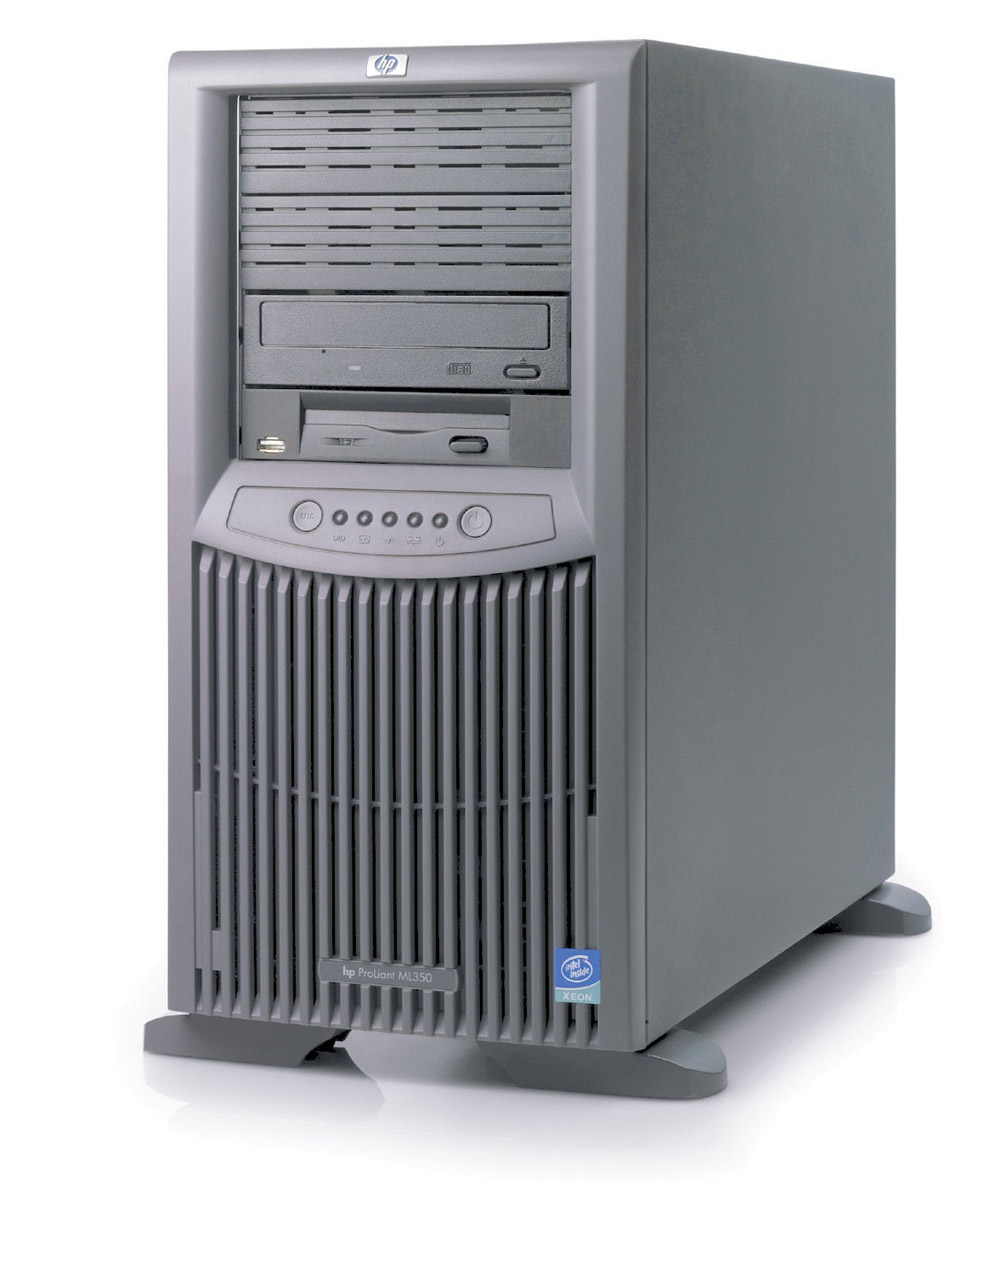 Сервер HP ProLiant ML350 G4p Server Rack XeonDP-3.2/2Mb/800MHz,   1Gb PC2-3200/400MHz, Ultra320-SCSI (max. 6x300Gb+2x300Gb), SA641, HotPlug, 6/6 PCI, CD, FDD, Gigabit NIC